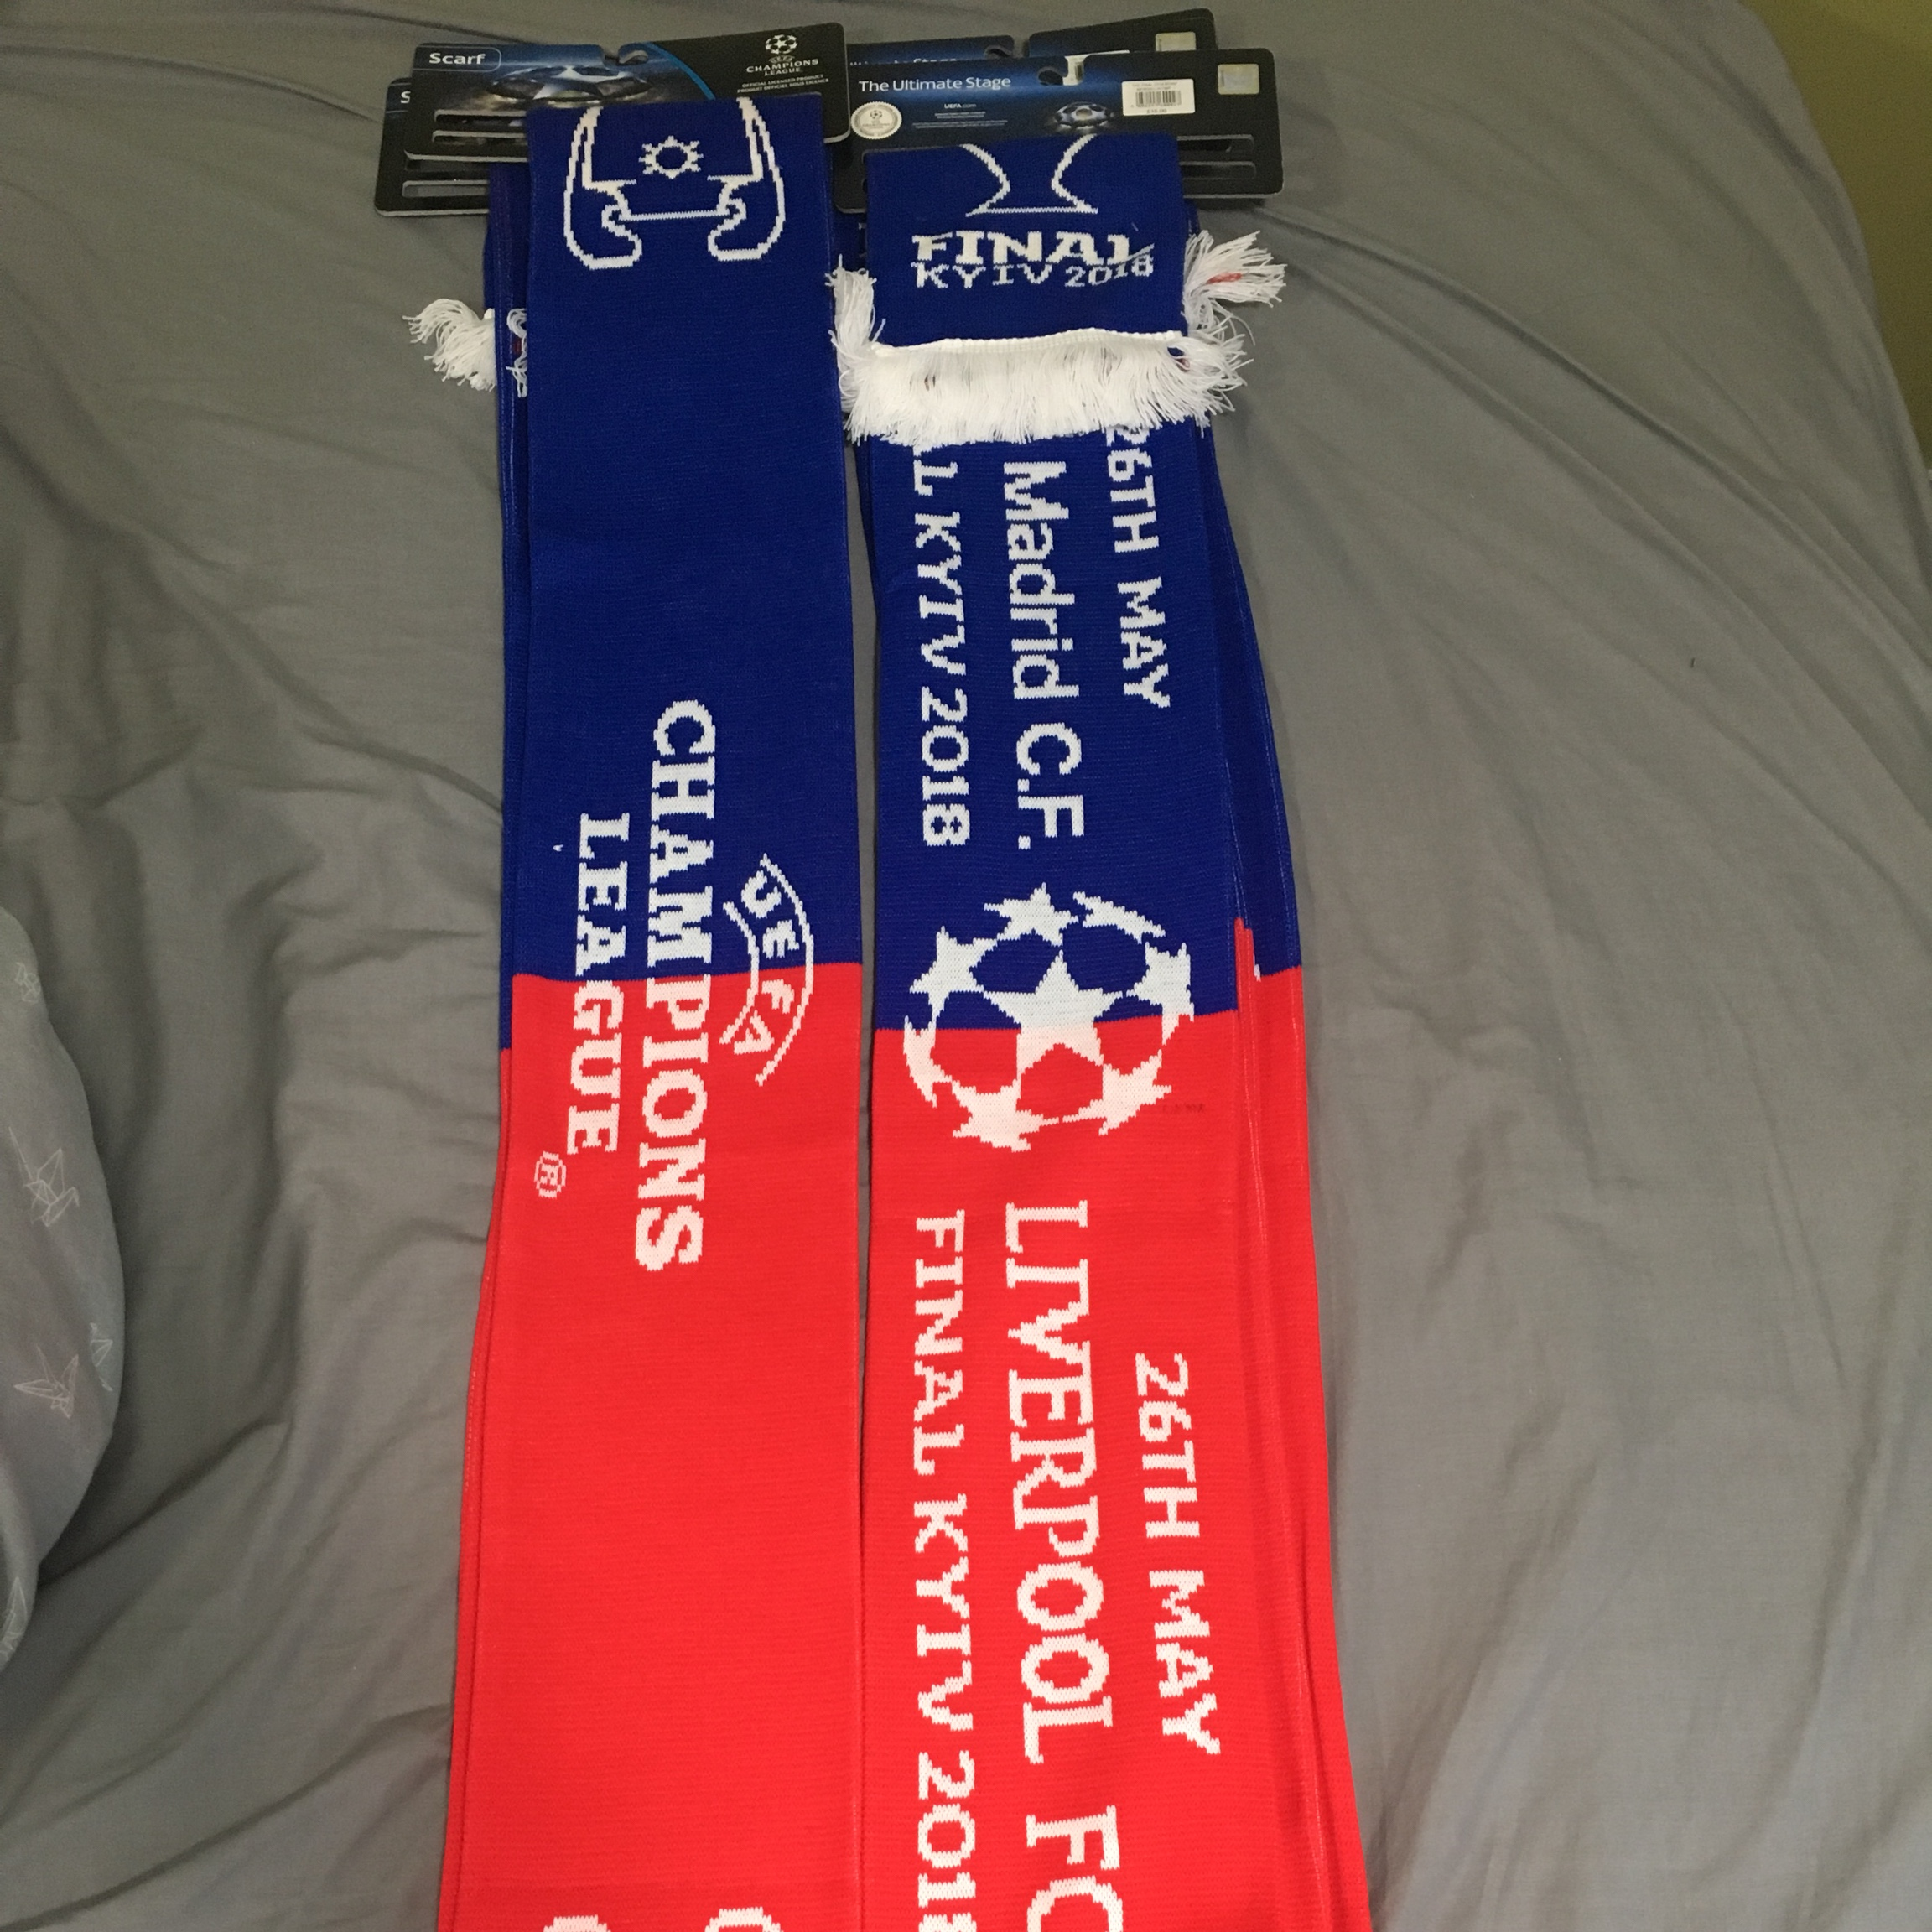 UEFA Champions League Scarf Ultimate Stage